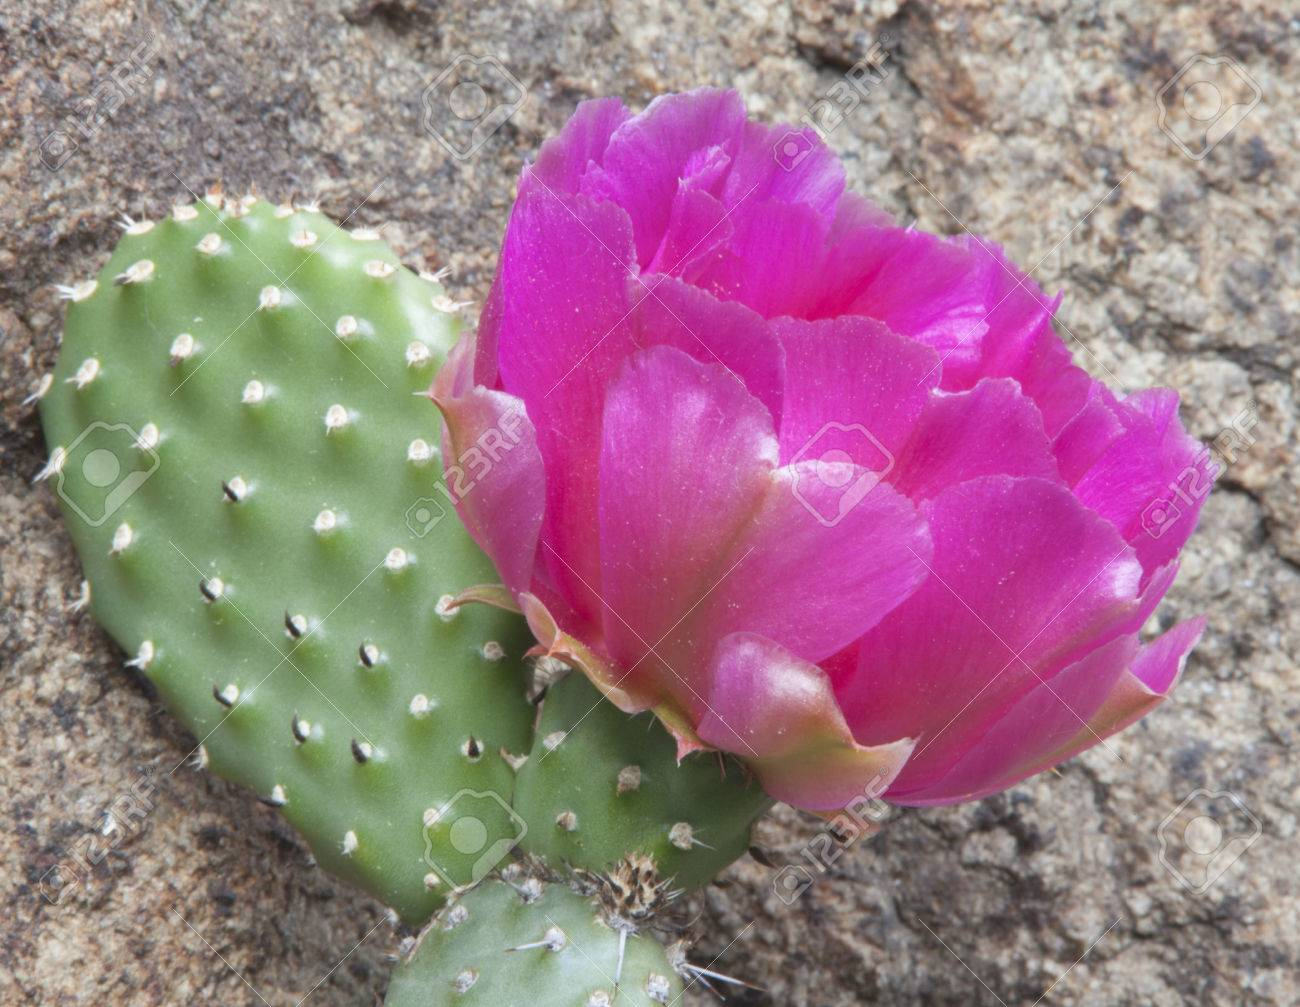 Large amazing pink cactus flower growing in a crevice of the stock large amazing pink cactus flower growing in a crevice of the stone cactus growing in mightylinksfo